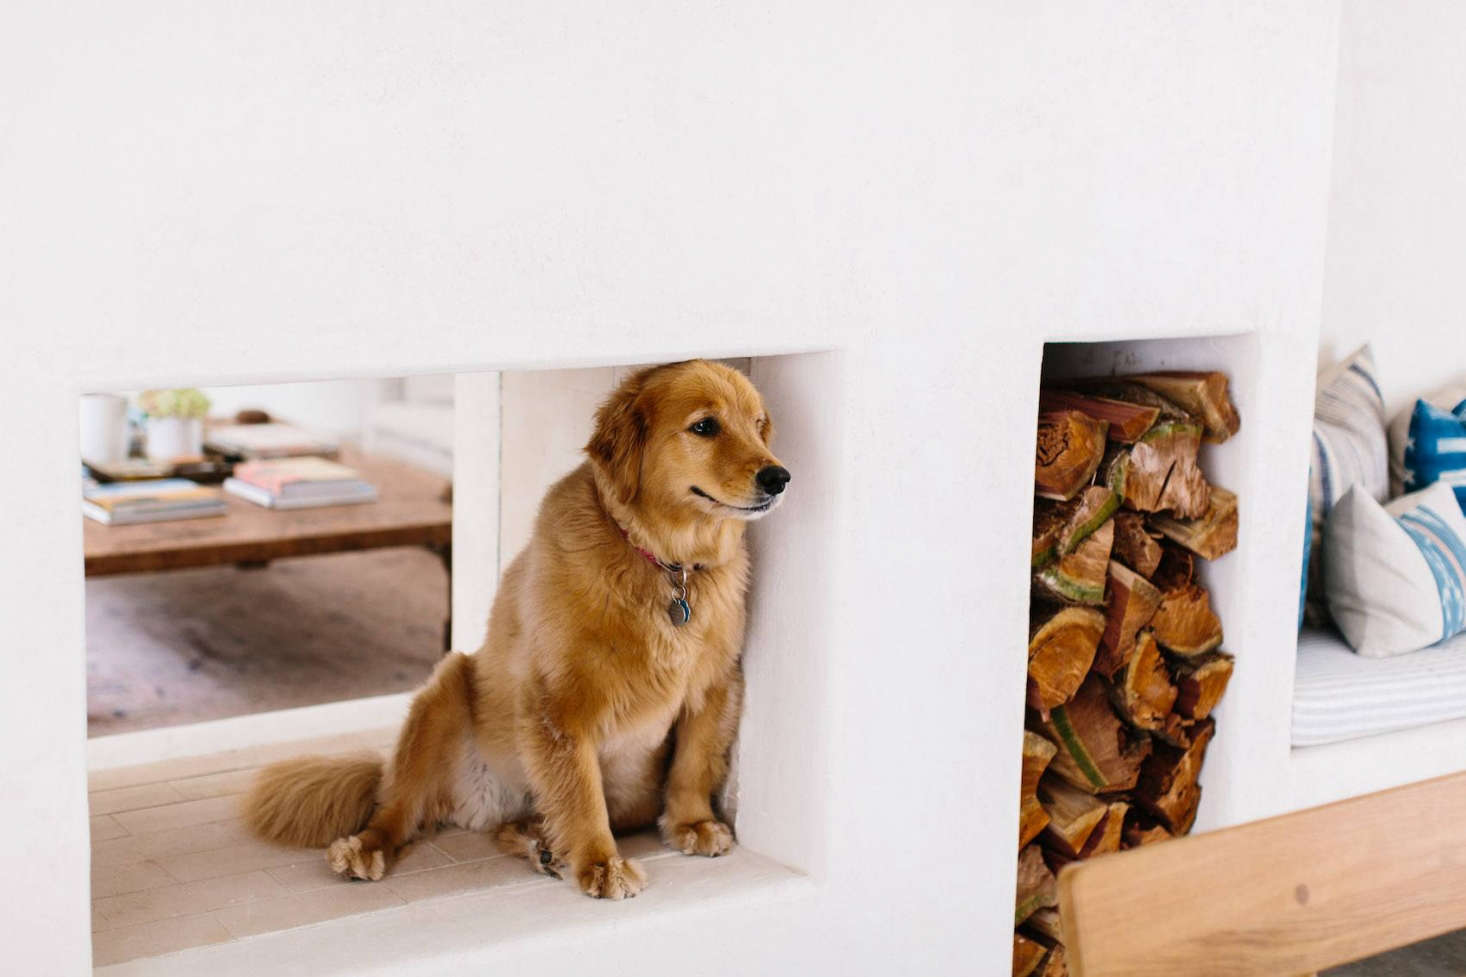 """The clients' golden retriever, Delilah, hangs out in the open fireplace connecting the living and dining rooms. Another pleasant tactile experience, notes Towill, is """"feeling the rounded edges of the plaster while you read by the fire."""""""